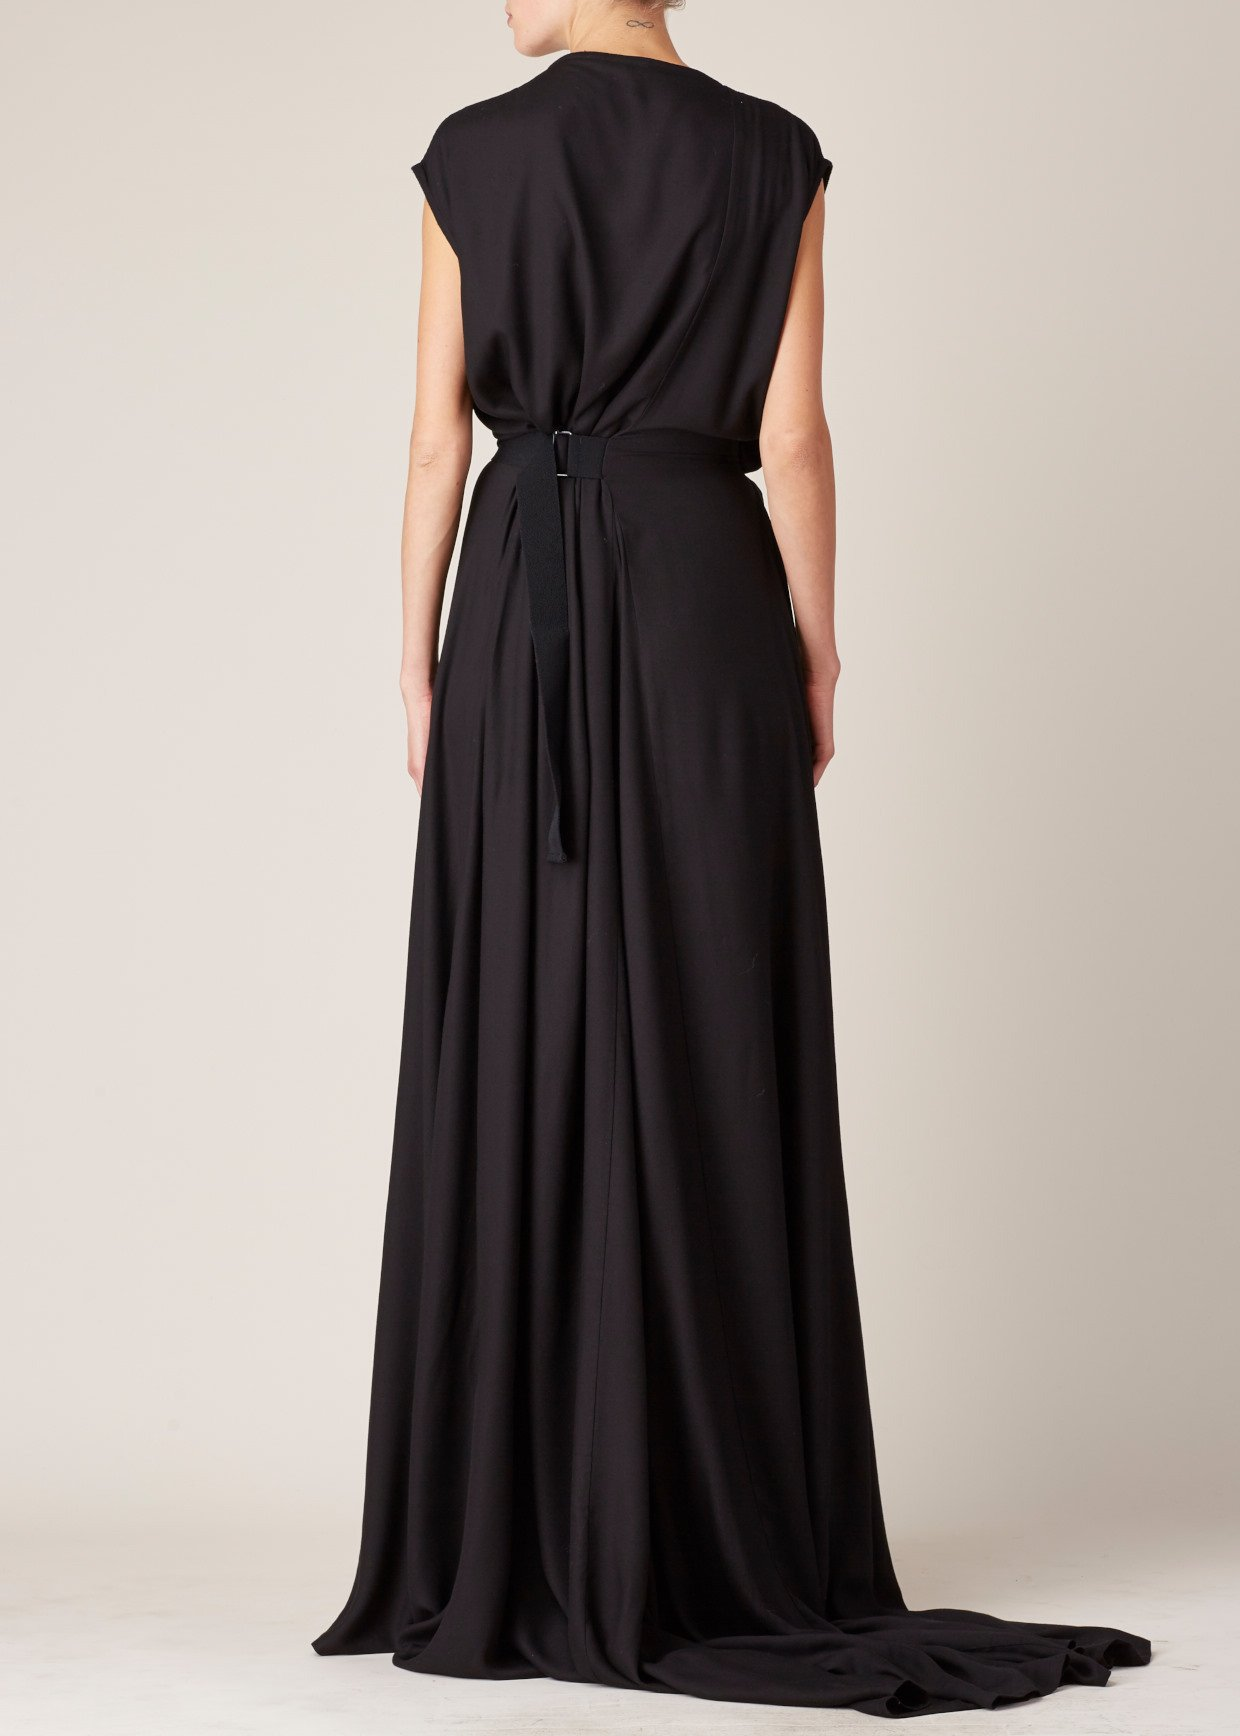 Lyst Ann Demeulemeester Black Infinity Dress In Black